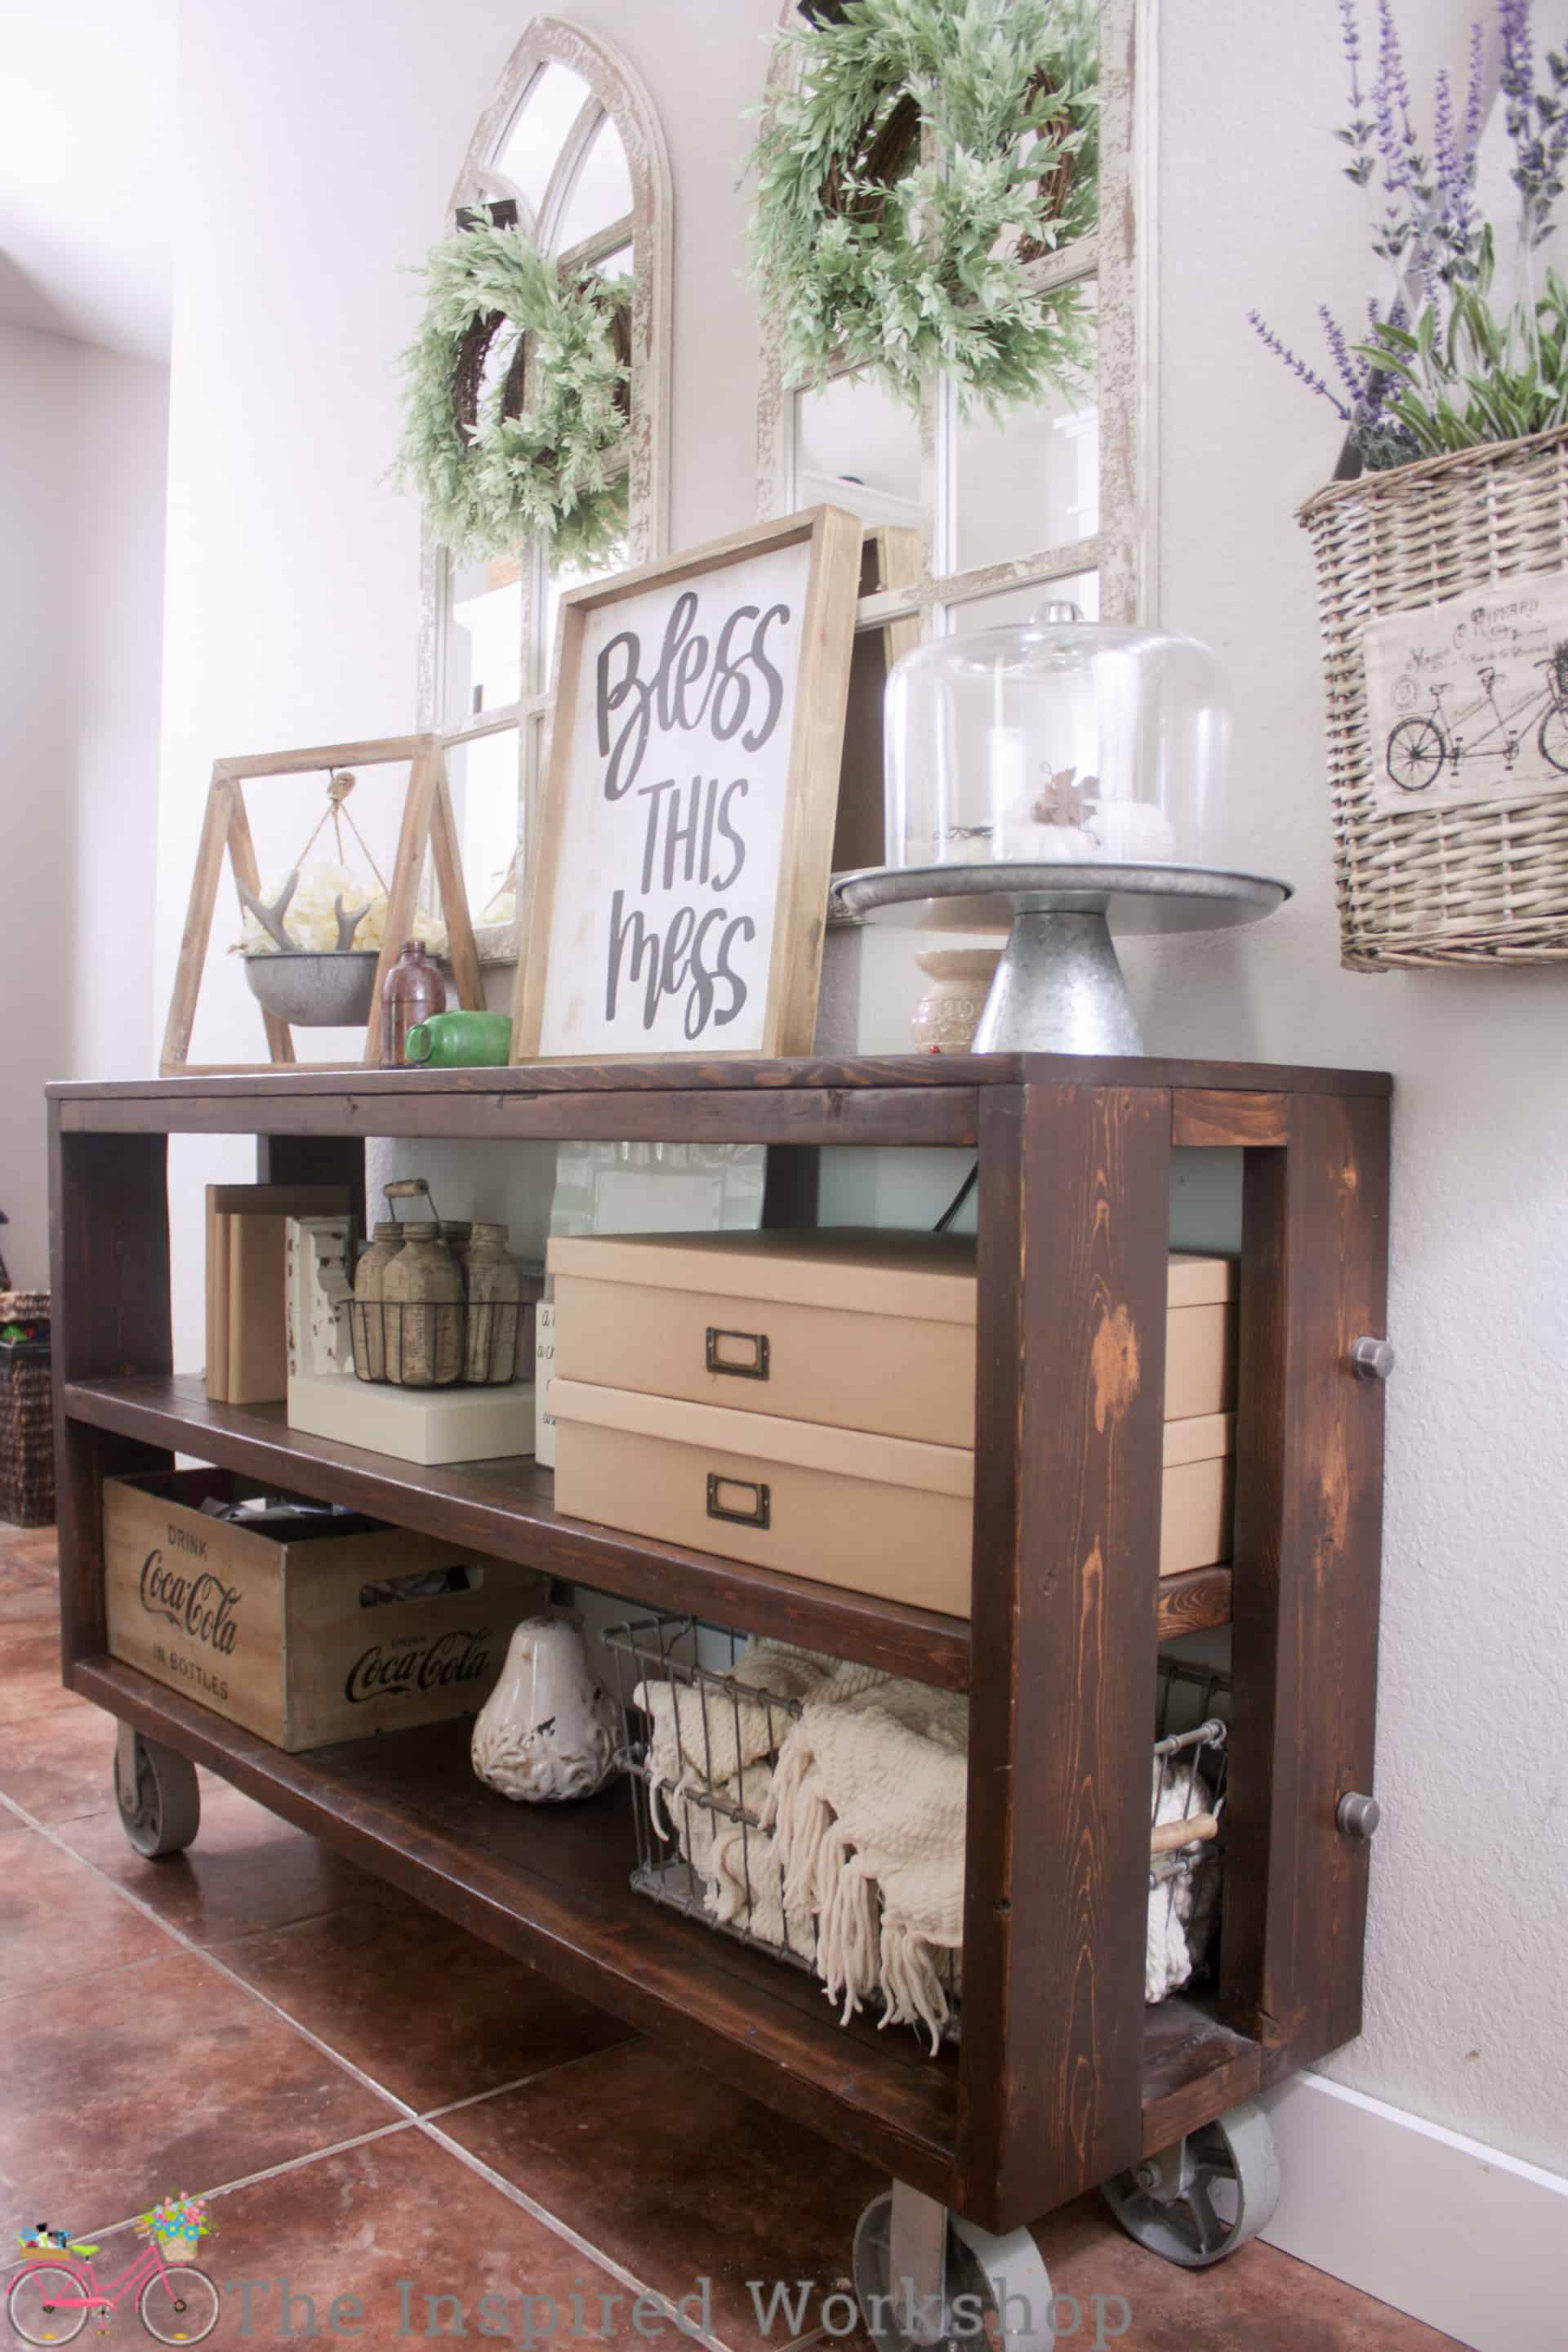 Restoration Hardware Knockoff Wood and Steel Console Table